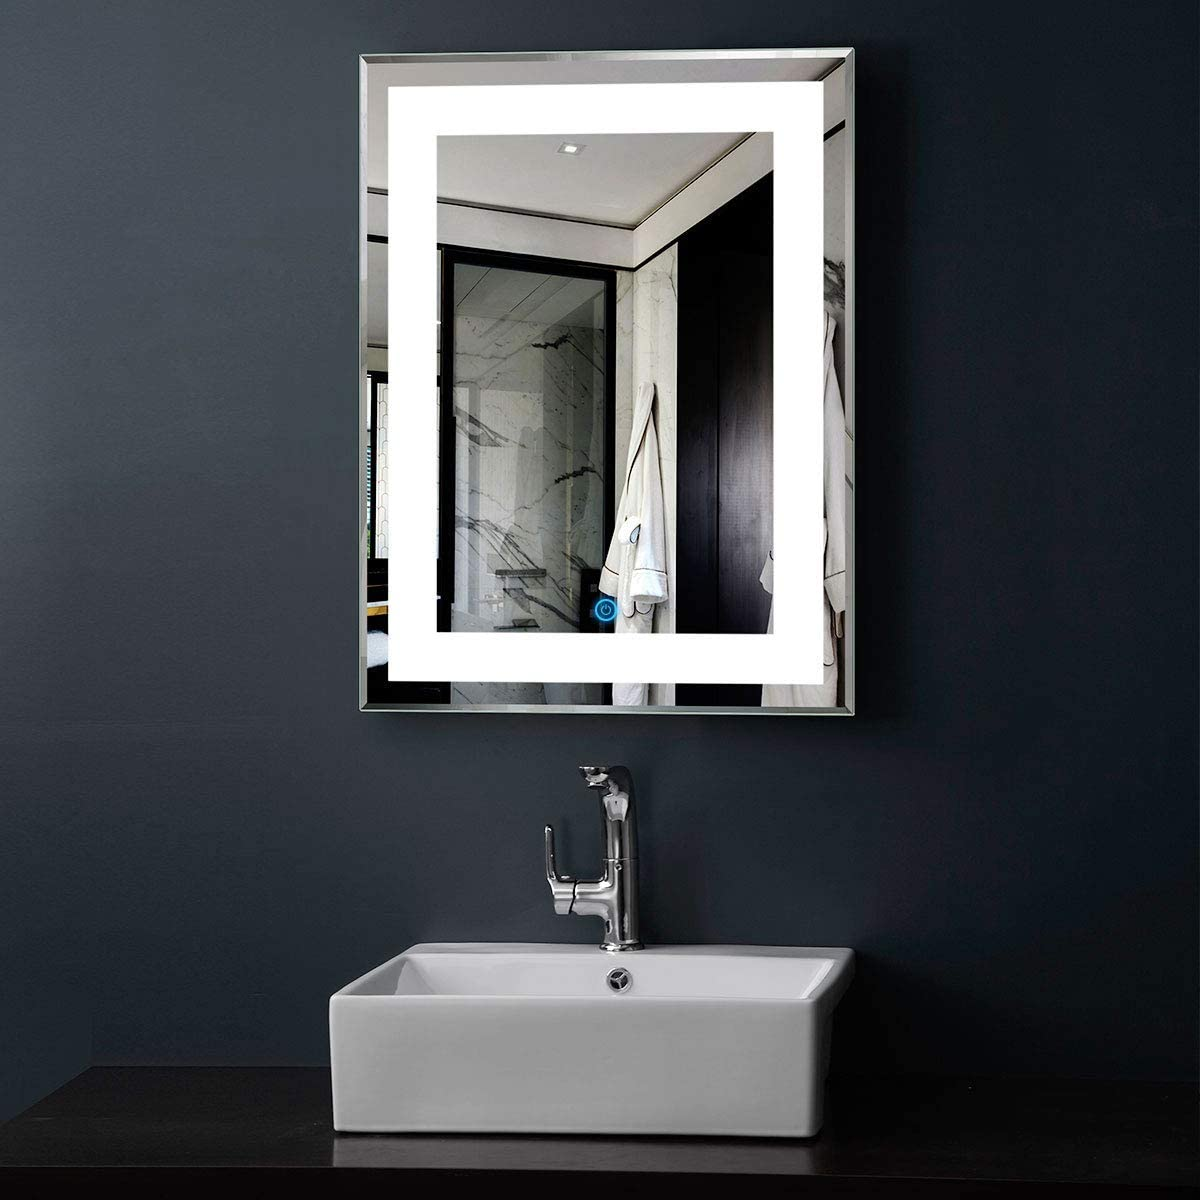 DP Home Vertical LED Bathroom Silvered Mirror with Touch Button 24 Inch x 32 Inch E-CK168